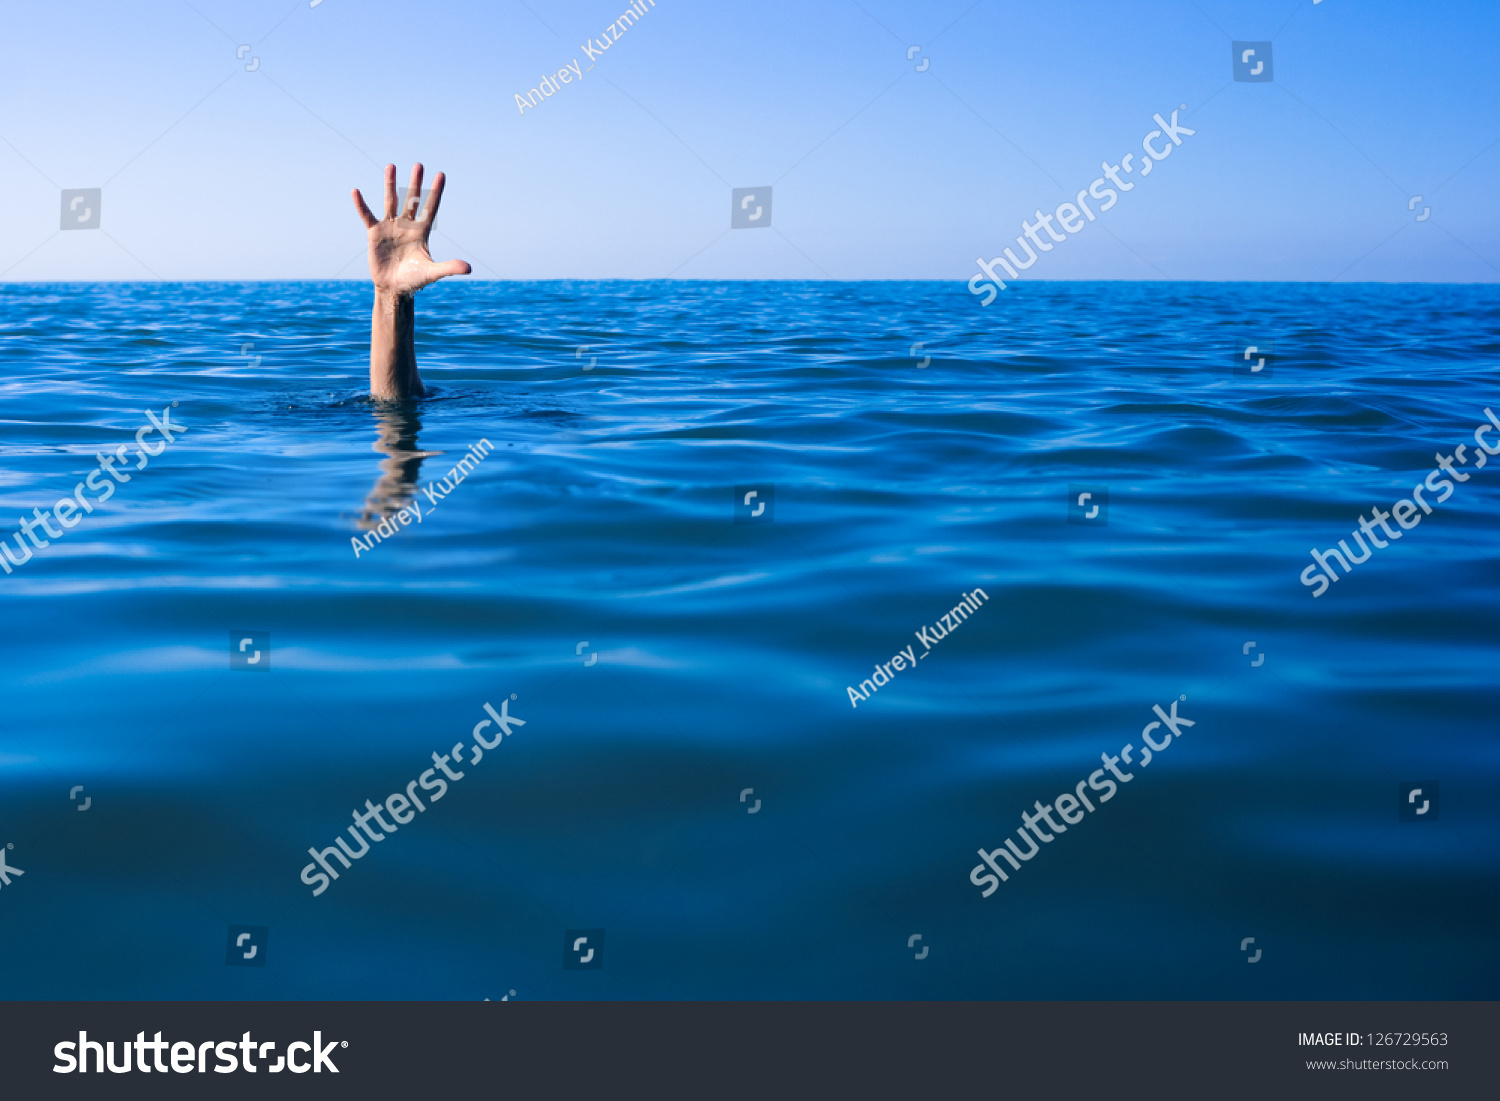 Person Drowning In Ocean